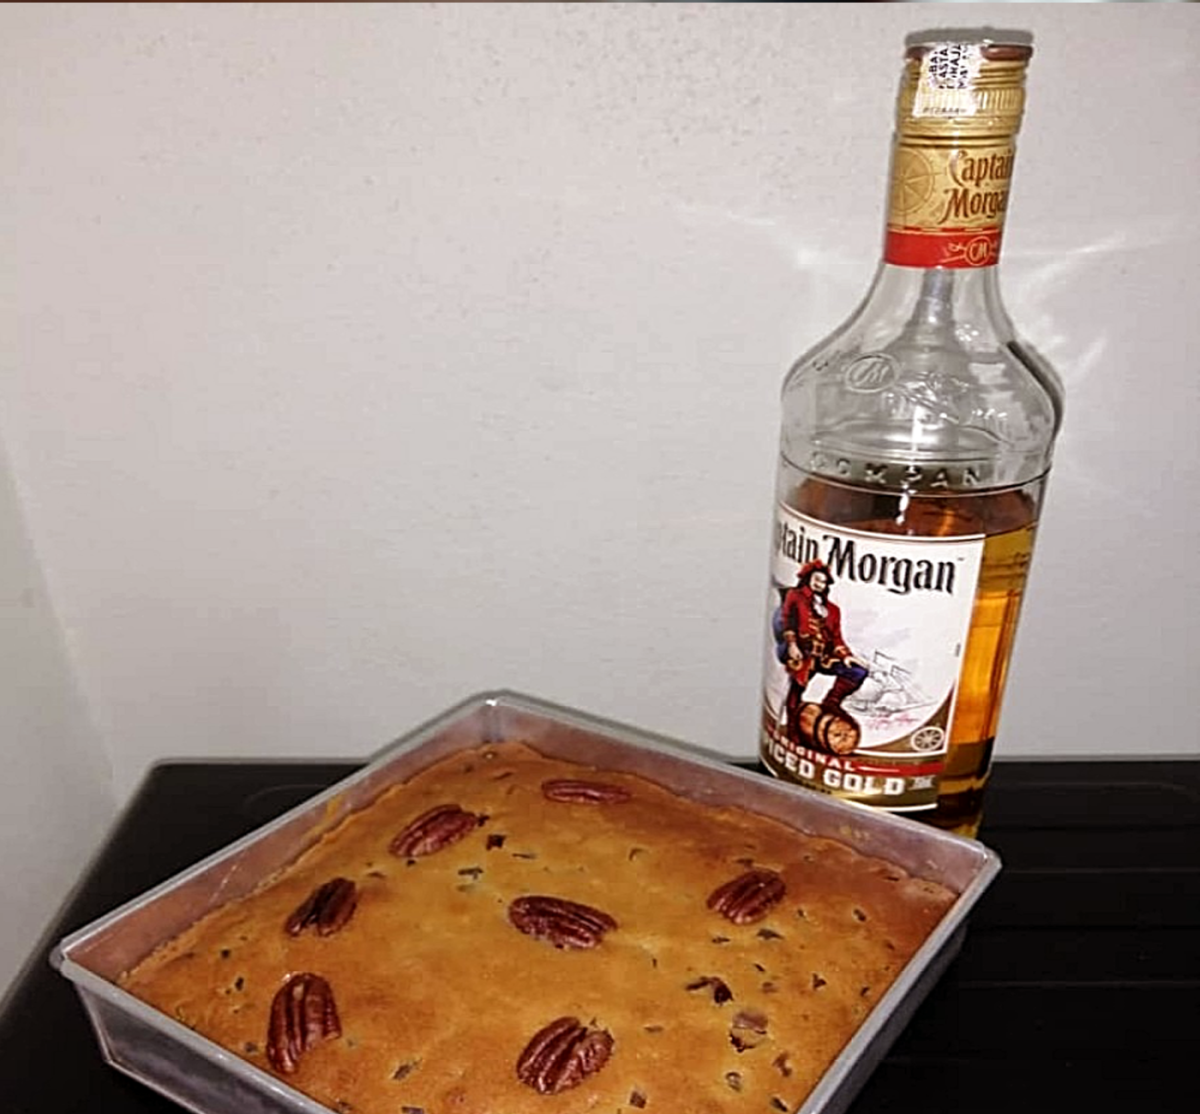 Rum Fruit cake made with mixed fruits laced with Captain Morgan Rum